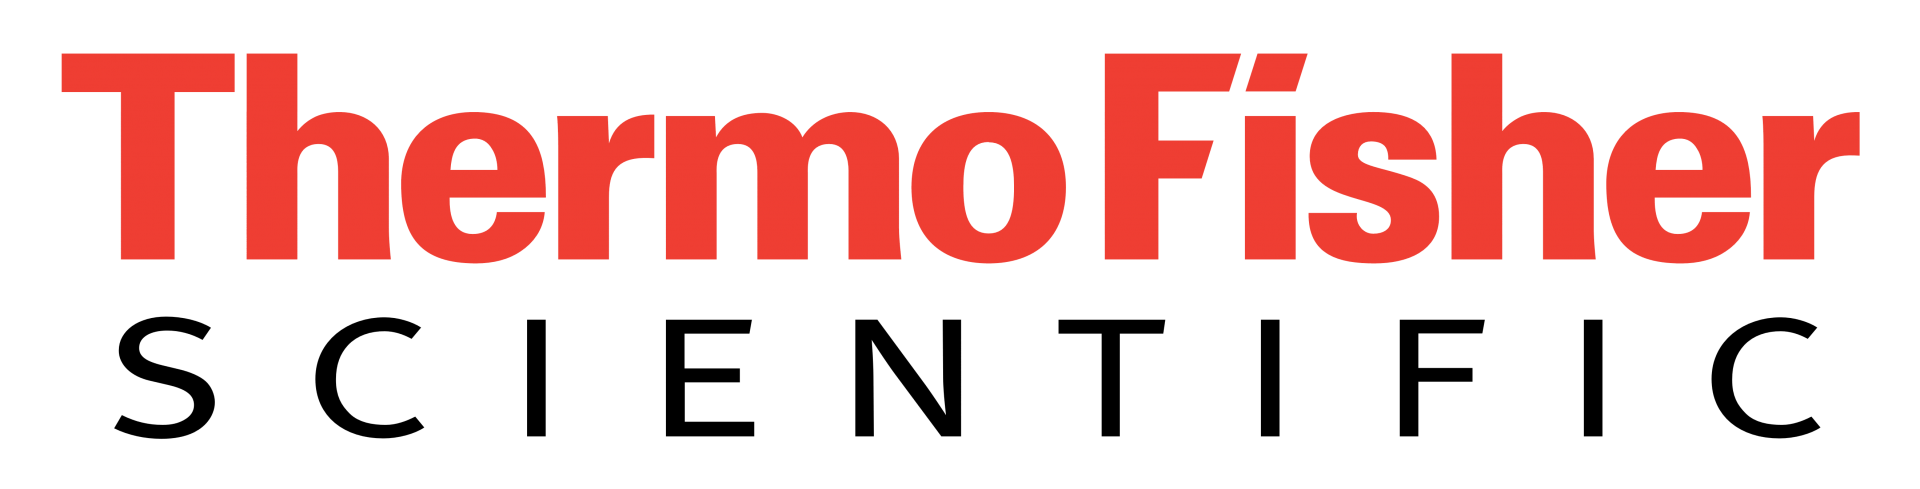 OmPrompt | ThermoFisher Scientific